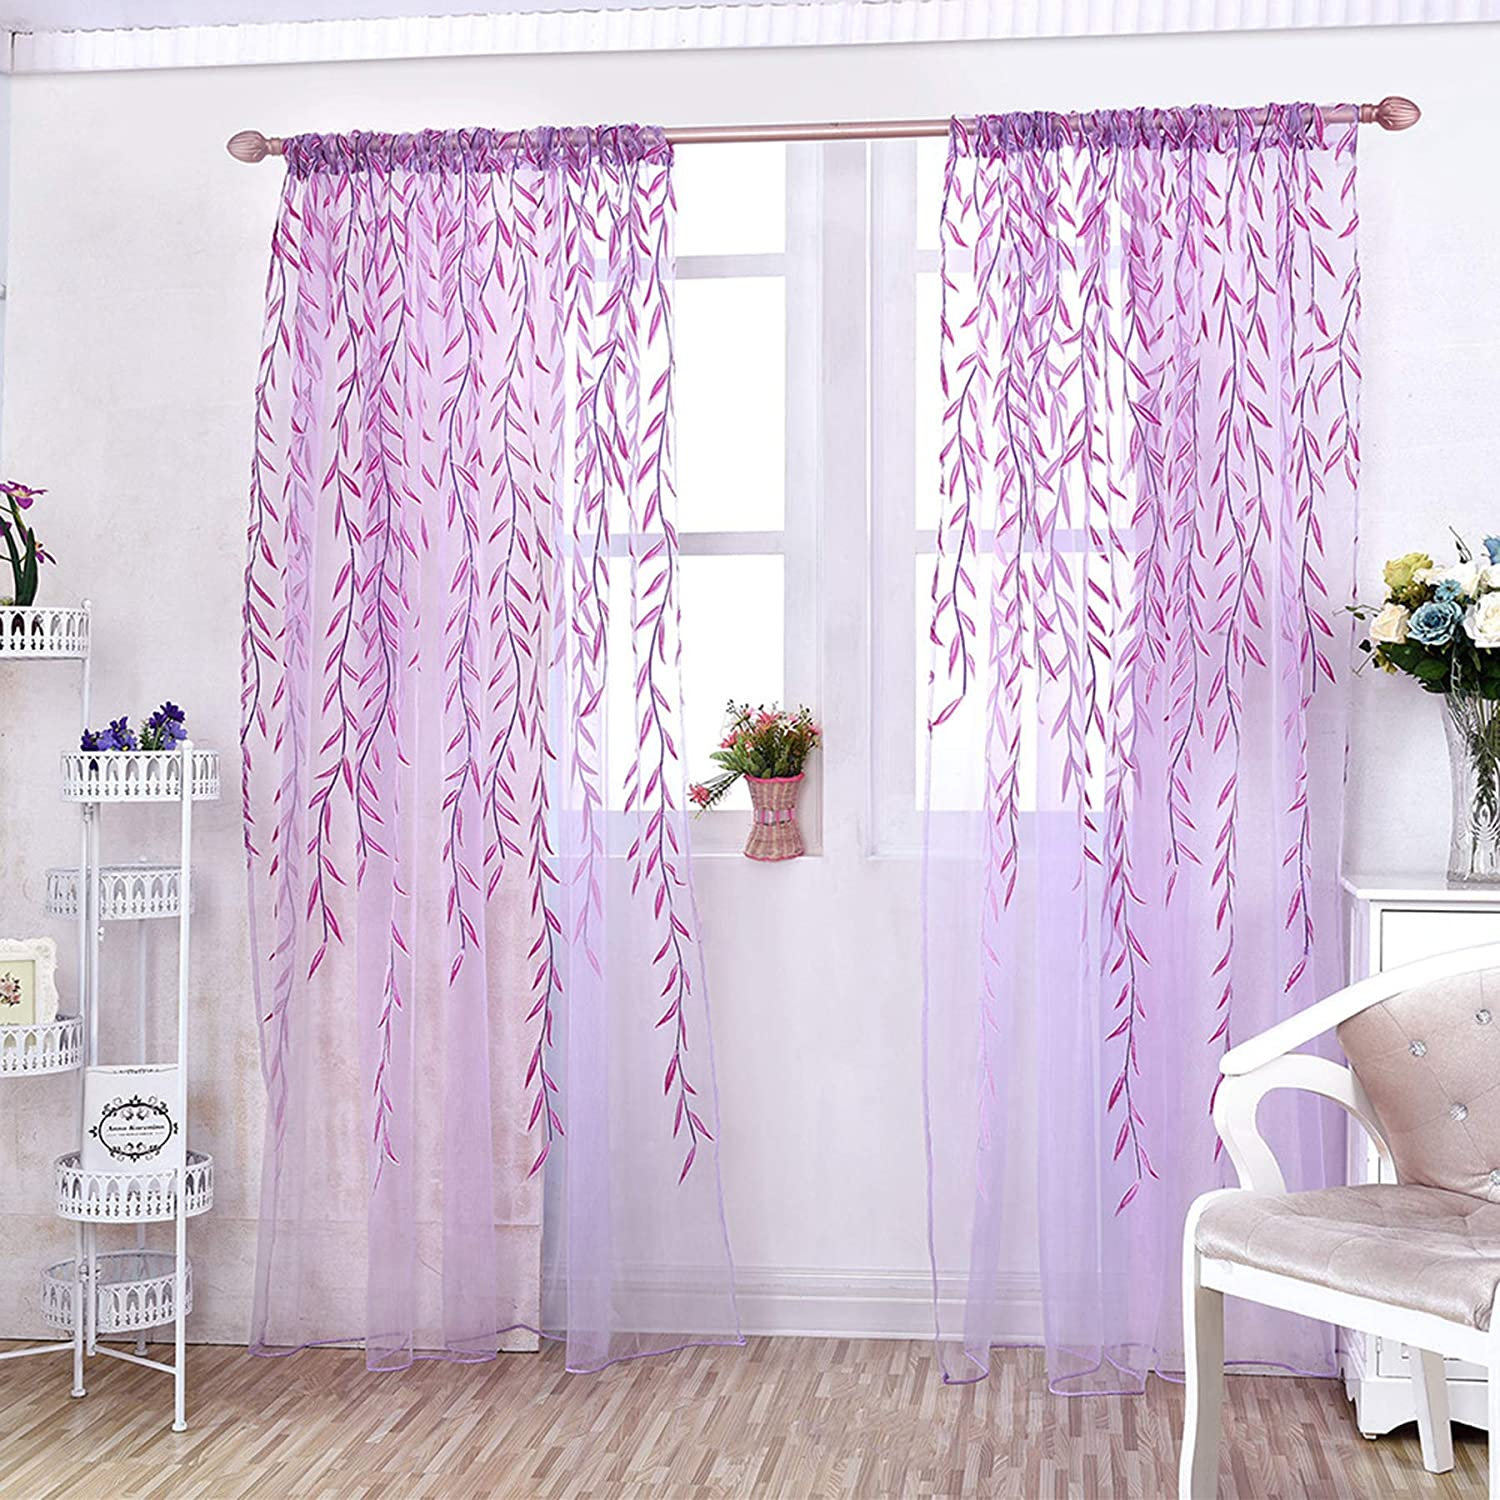 Branded goods Damask Print Sheer Curtain Window Ranking TOP19 Pan Floral Voile